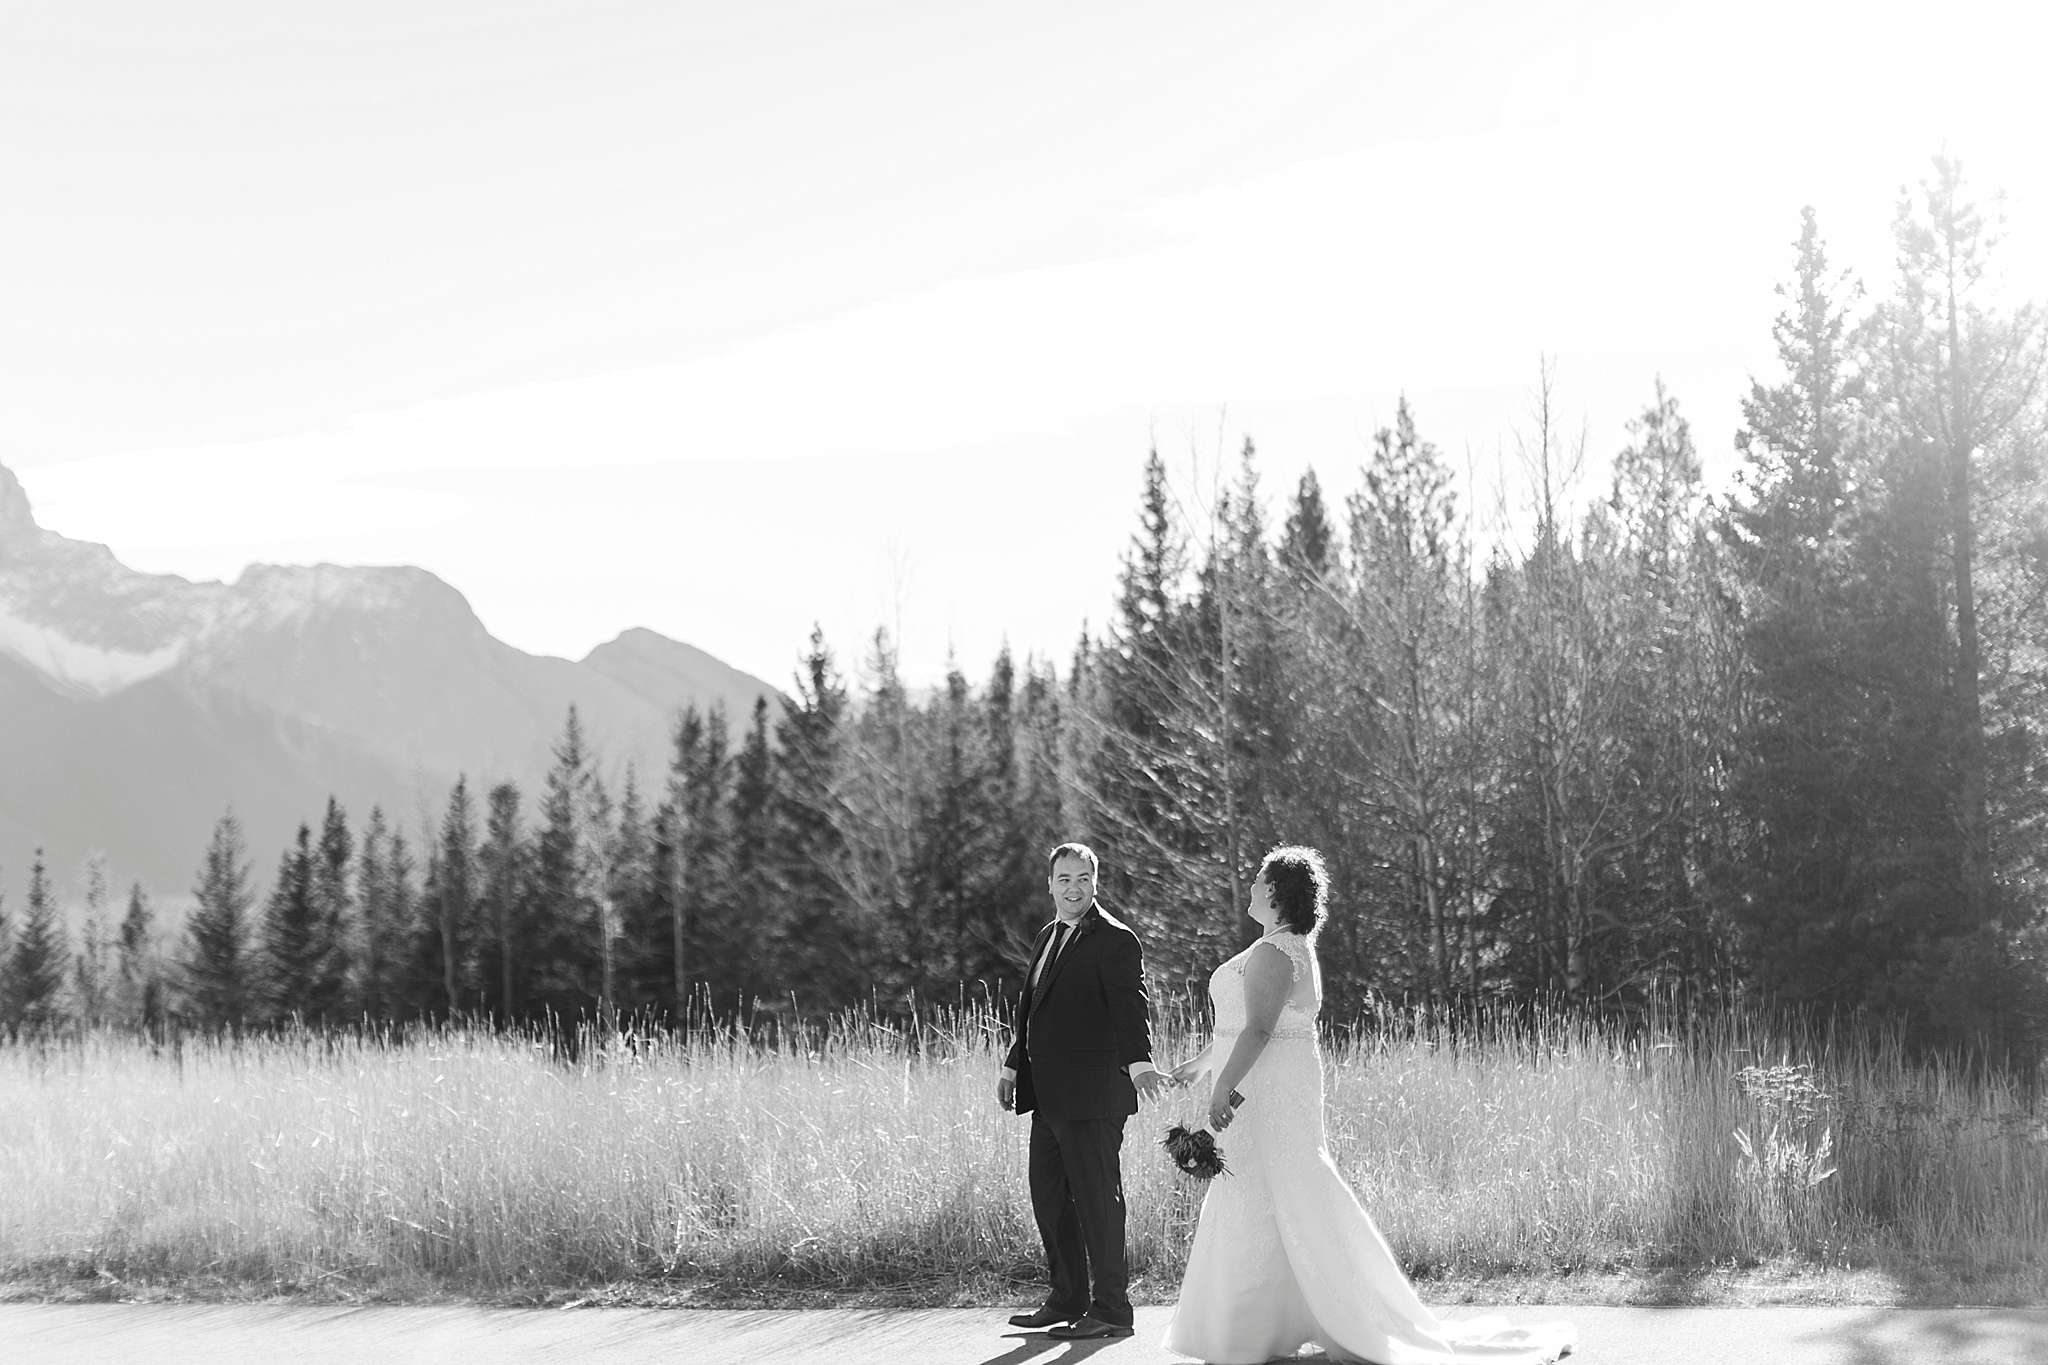 Delta-kananaskis-wedding056.JPG